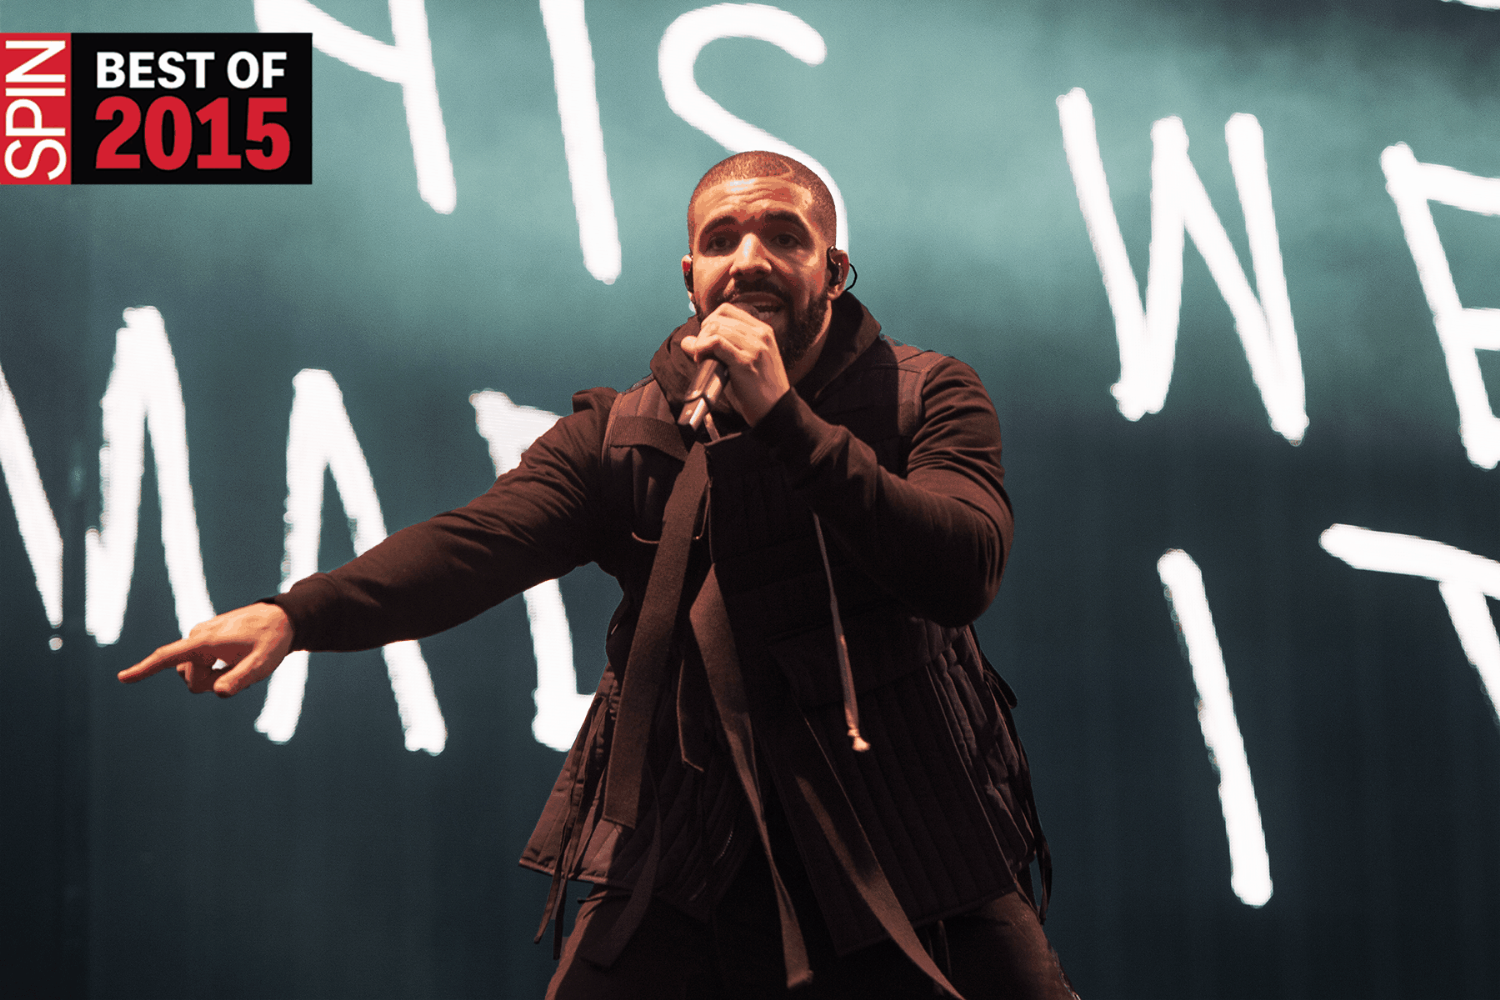 Drake Is 2015's Artist of the Year